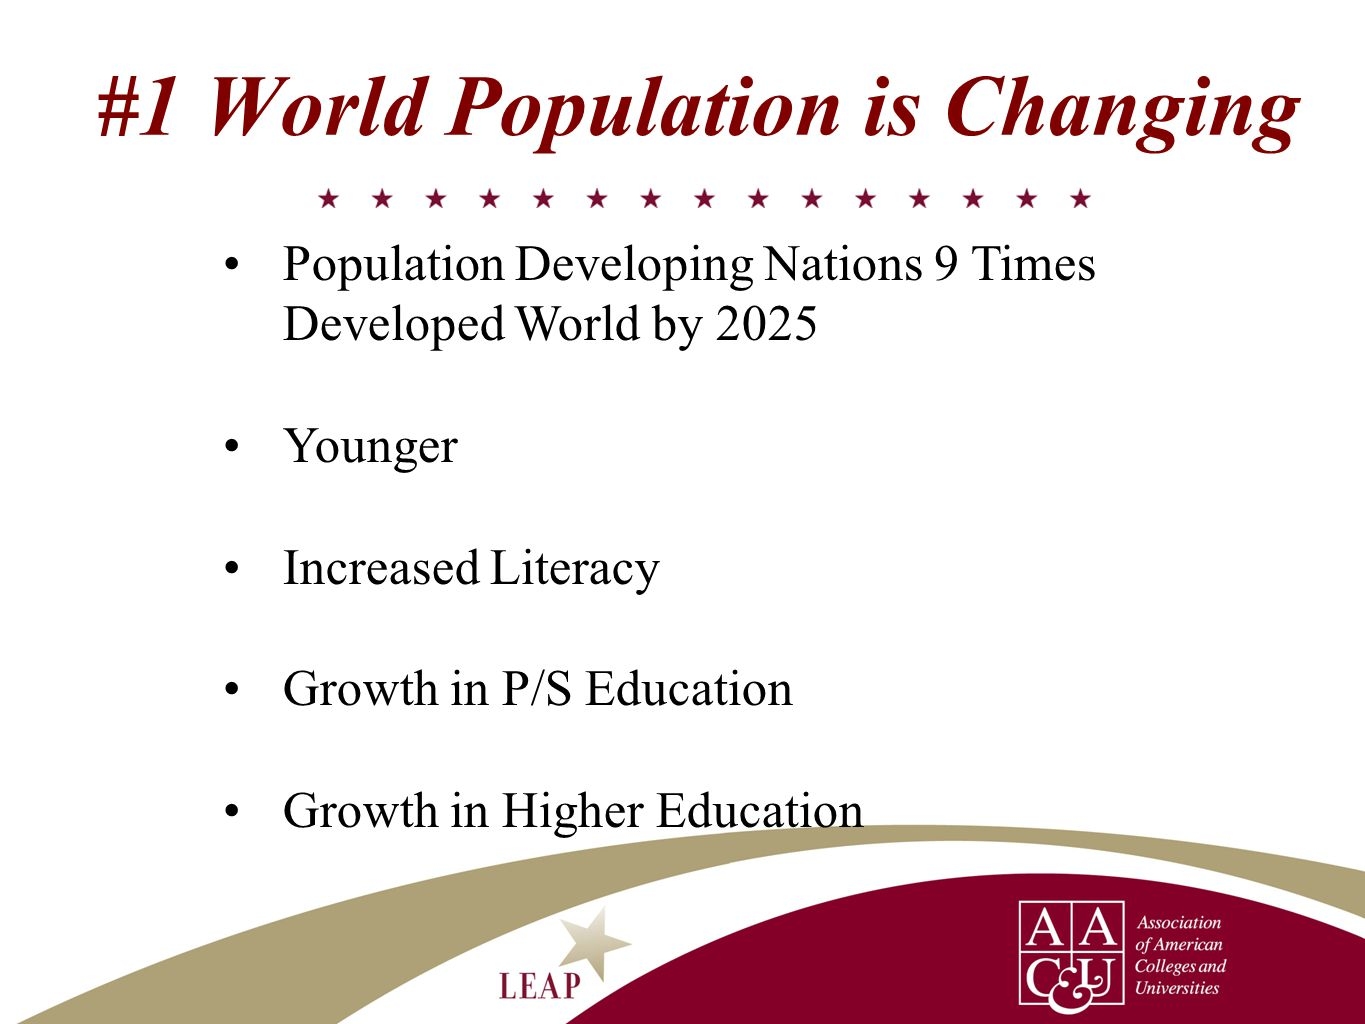 Population Developing Nations 9 Times Developed World by 2025 Younger Increased Literacy Growth in P/S Education Growth in Higher Education #1 World Population is Changing